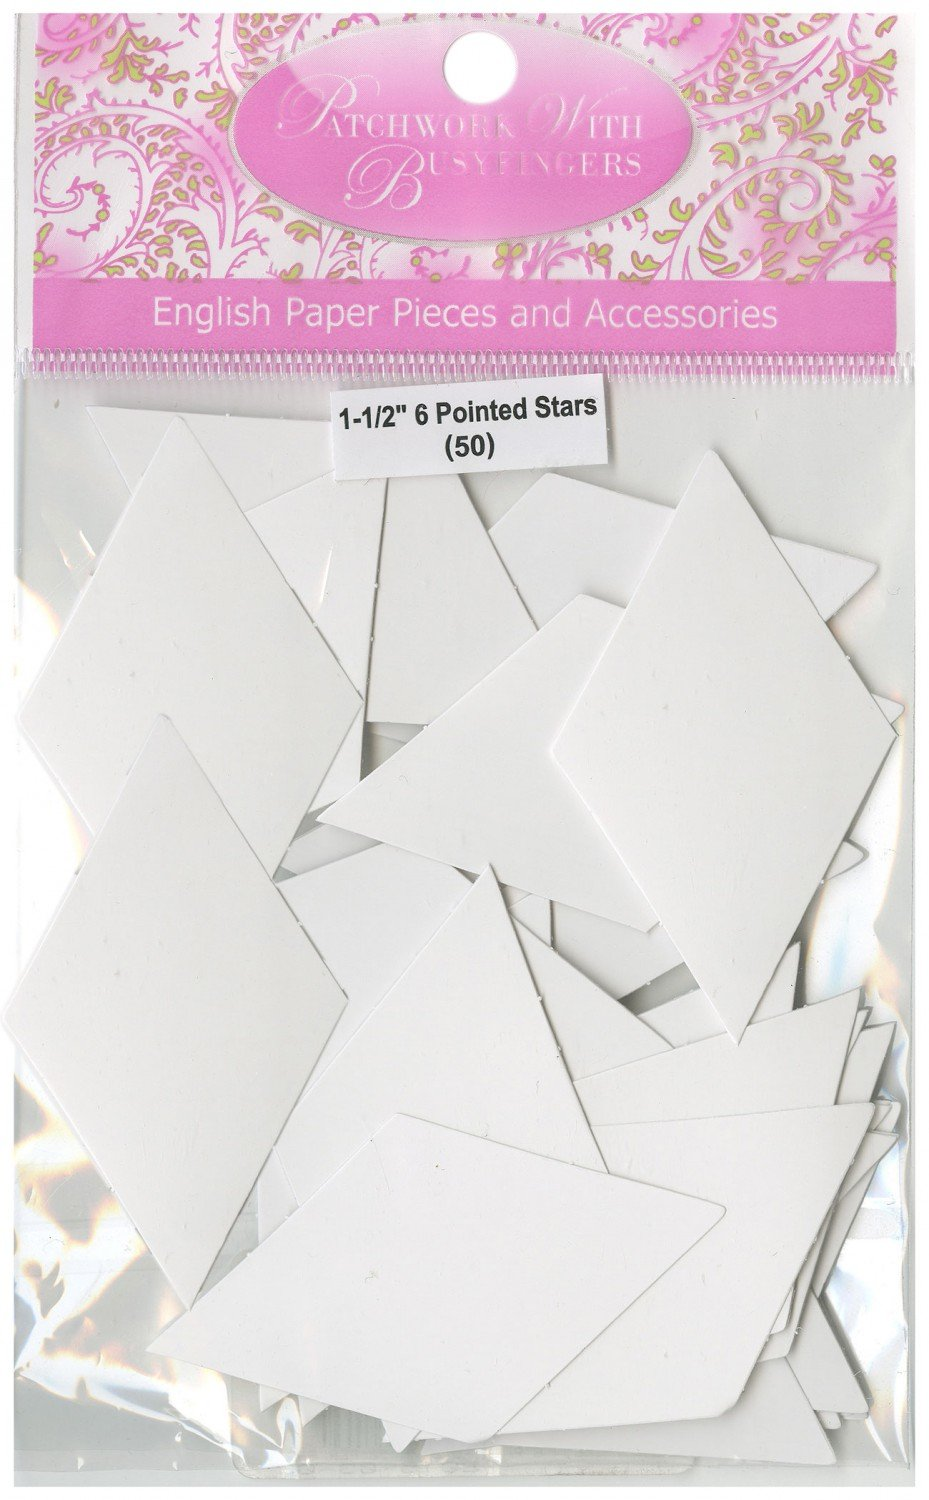 1-1/2in 6 Pointed Star Papers (100 pieces per bag)